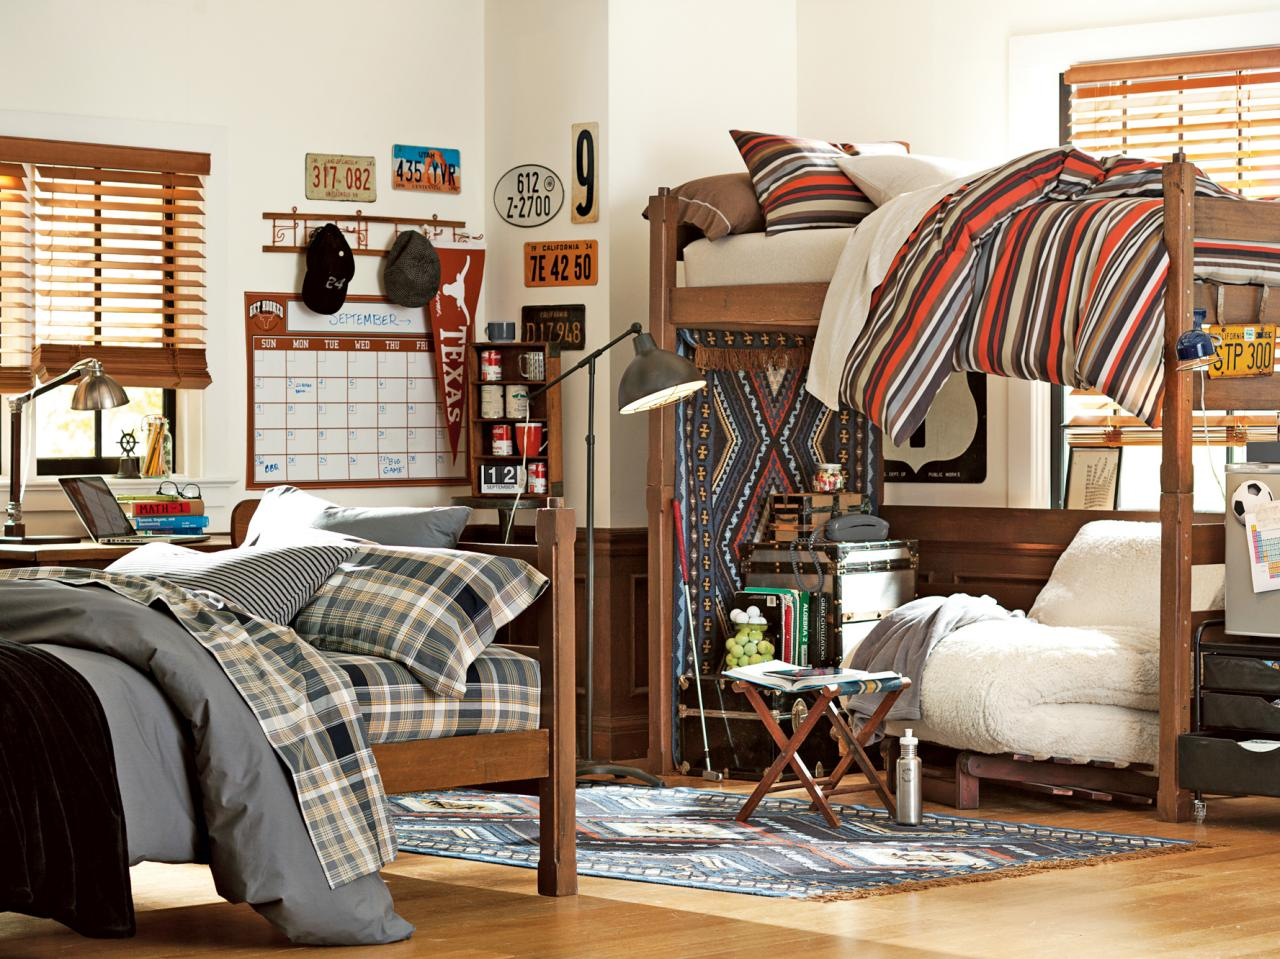 Dorm room storage seating and layout checklist hgtv for Hall room decoration ideas